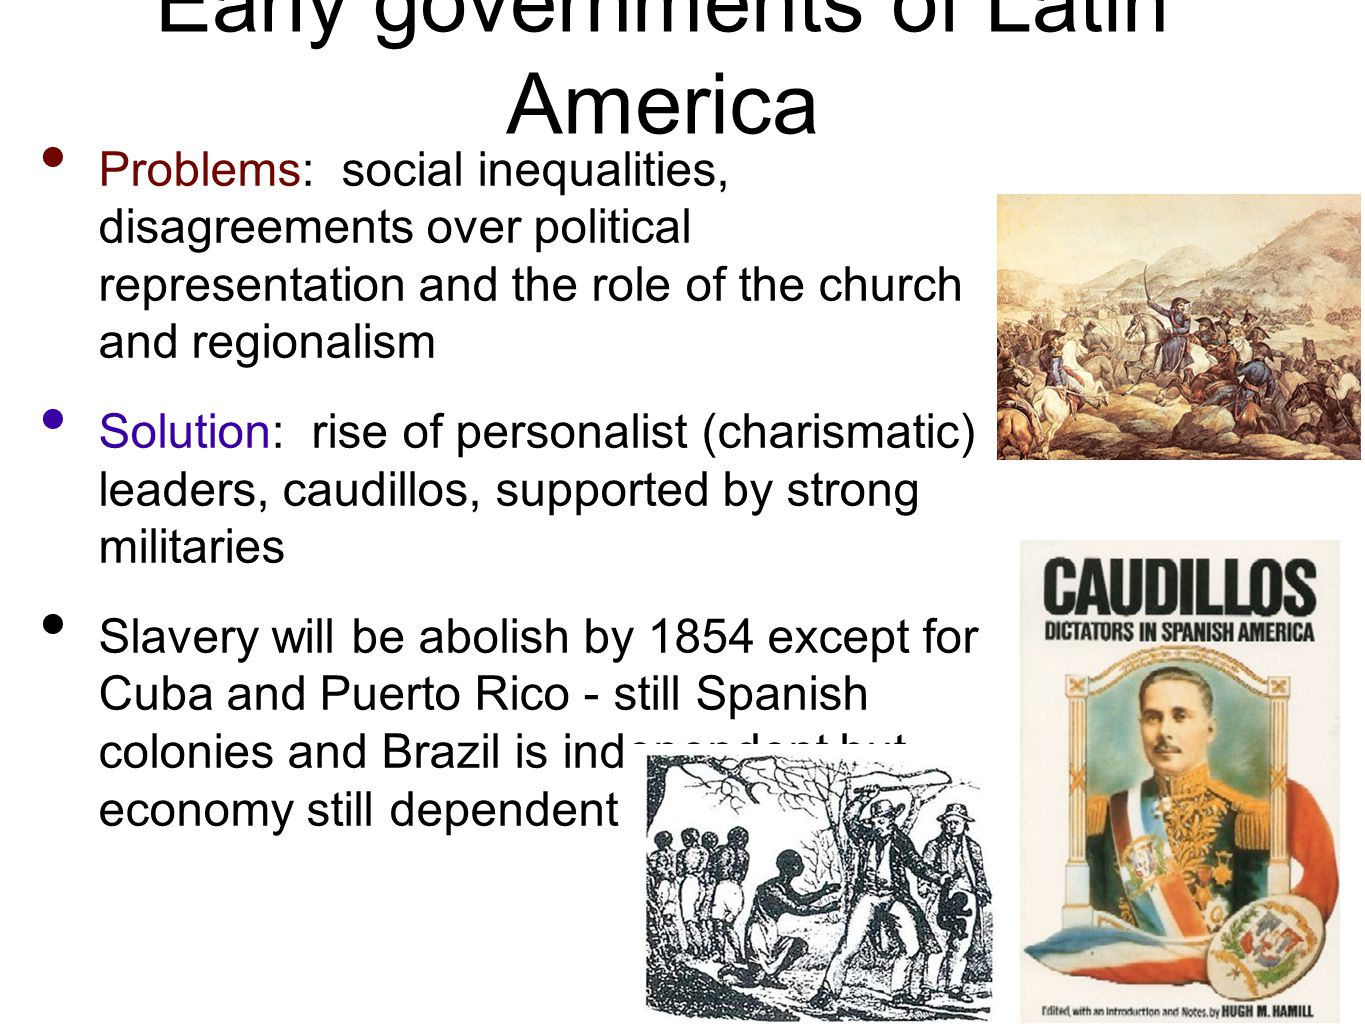 Early governments of Latin America Problems: social inequalities, disagreements over political representation and the role of the church and regionalism Solution: rise of personalist (charismatic) leaders, caudillos, supported by strong militaries Slavery will be abolish by 1854 except for Cuba and Puerto Rico - still Spanish colonies and Brazil is independent but economy still dependent on slavery.